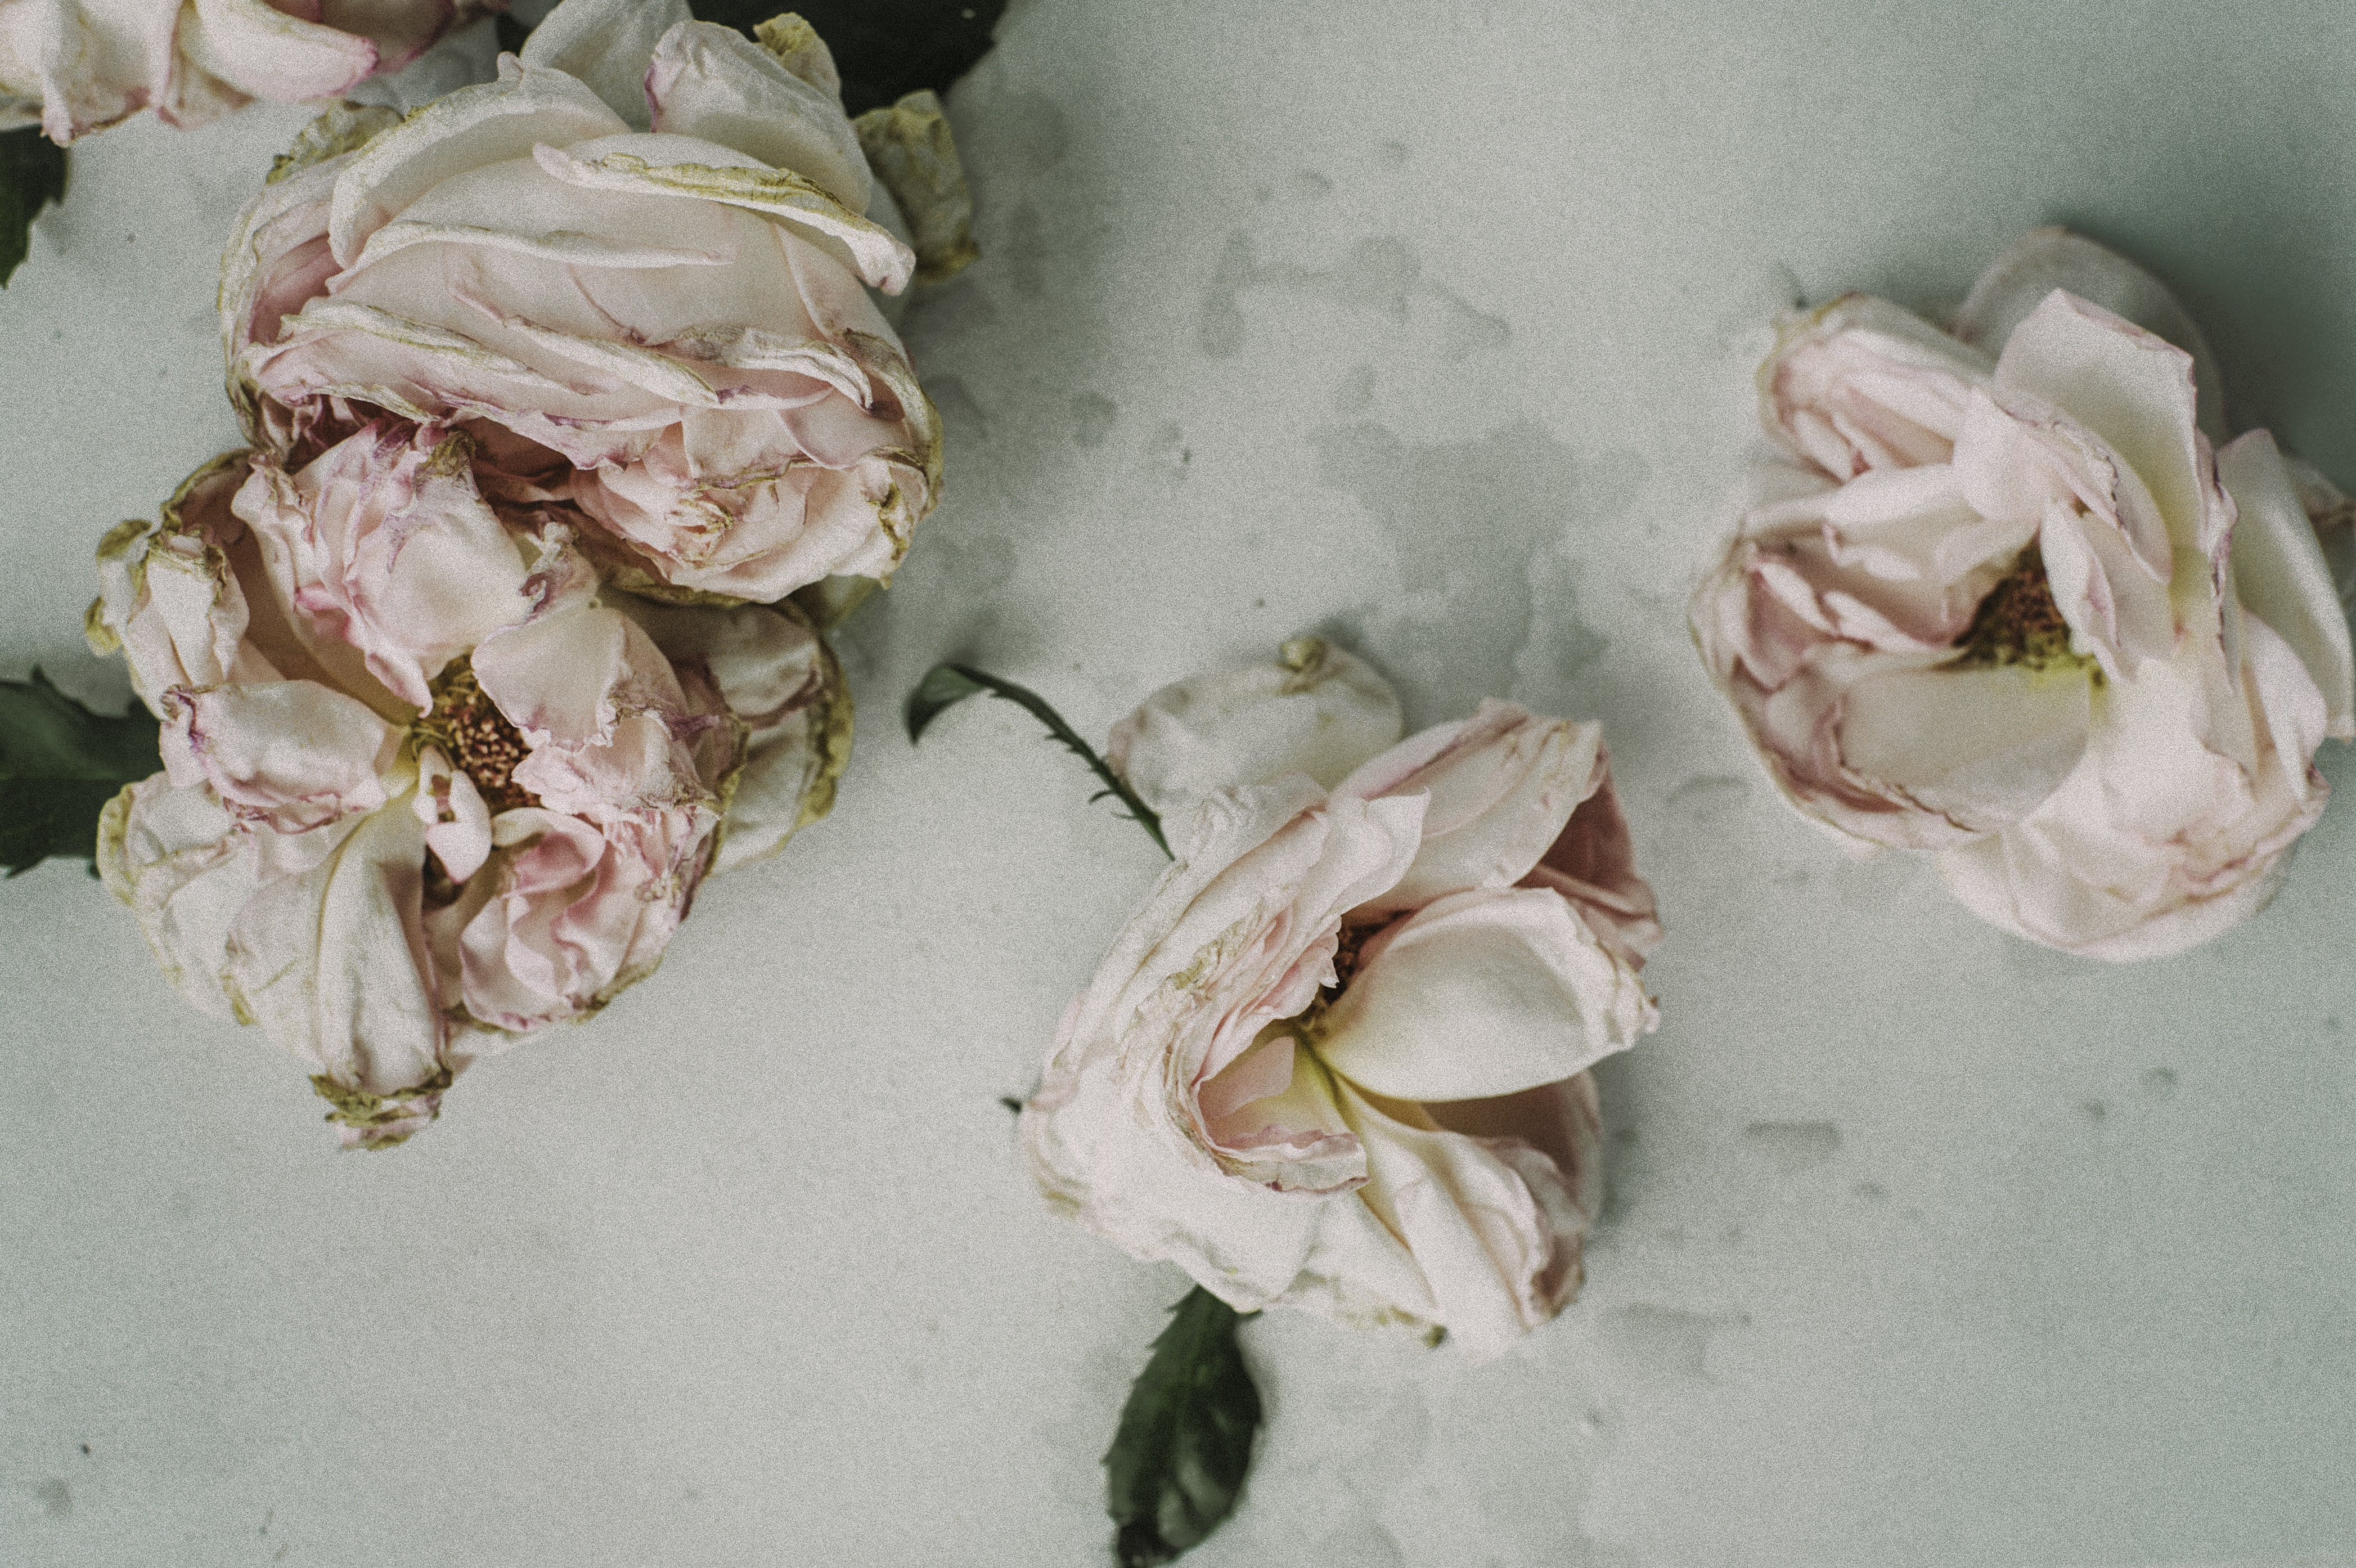 An overhead shot of wilting pink rose flowers on a white surface